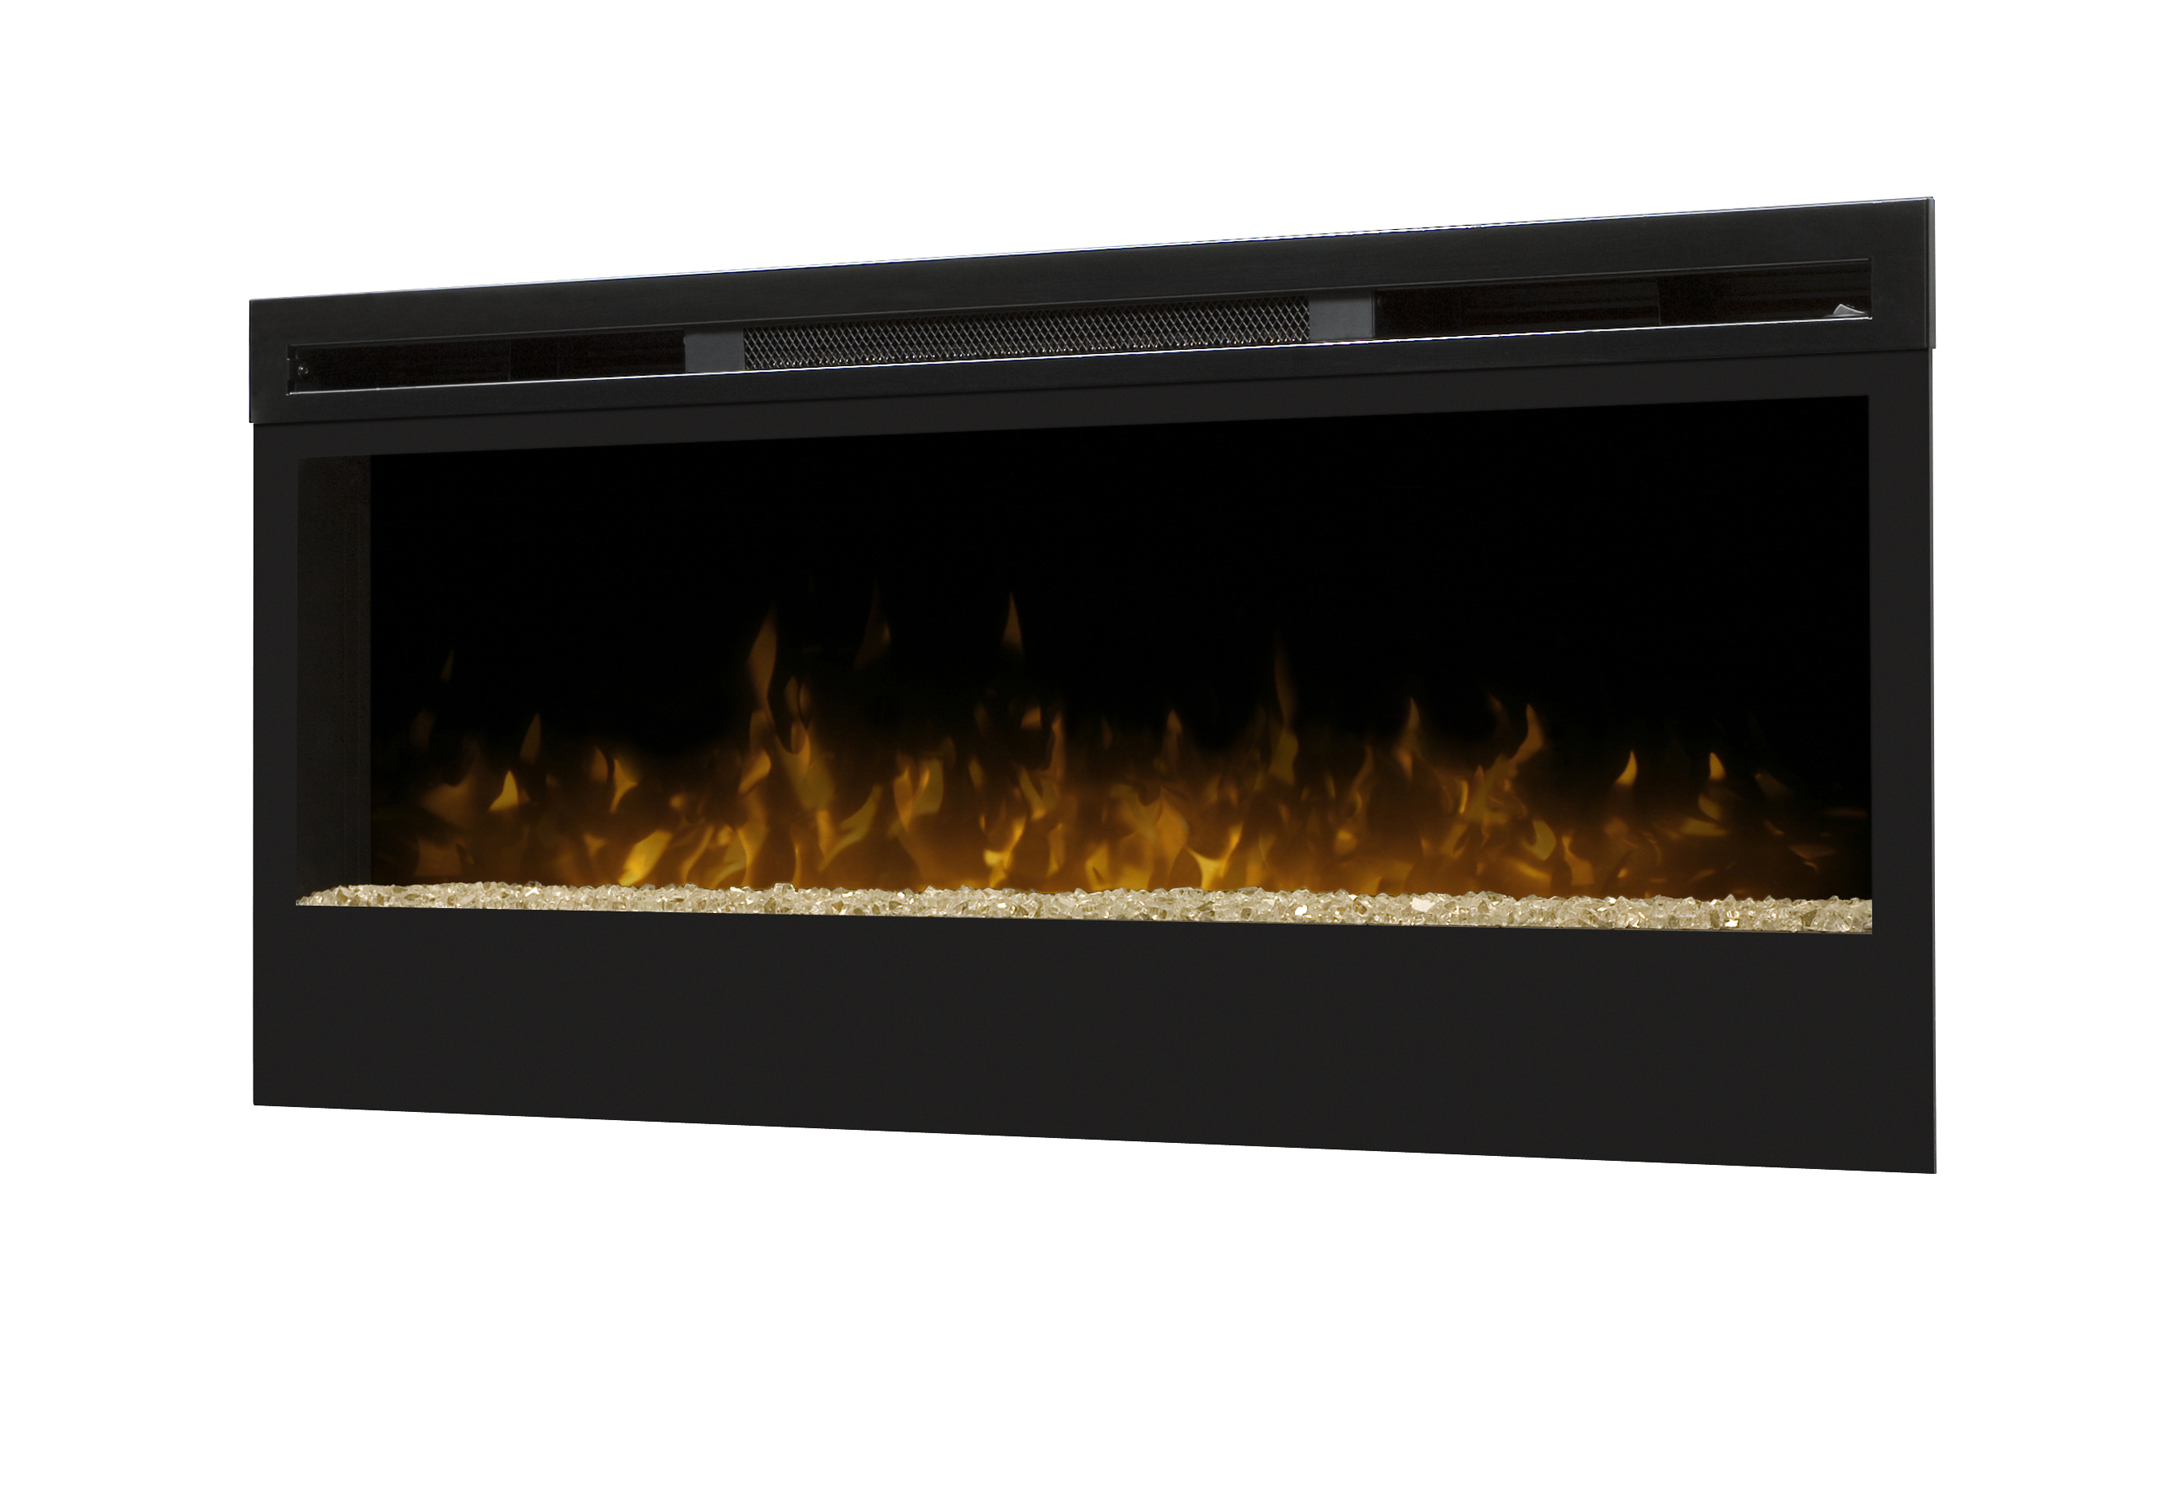 Dimplex BLF-50 BLF50 / BLF-50 Synergy Linear Electric Fireplace 50-Inch